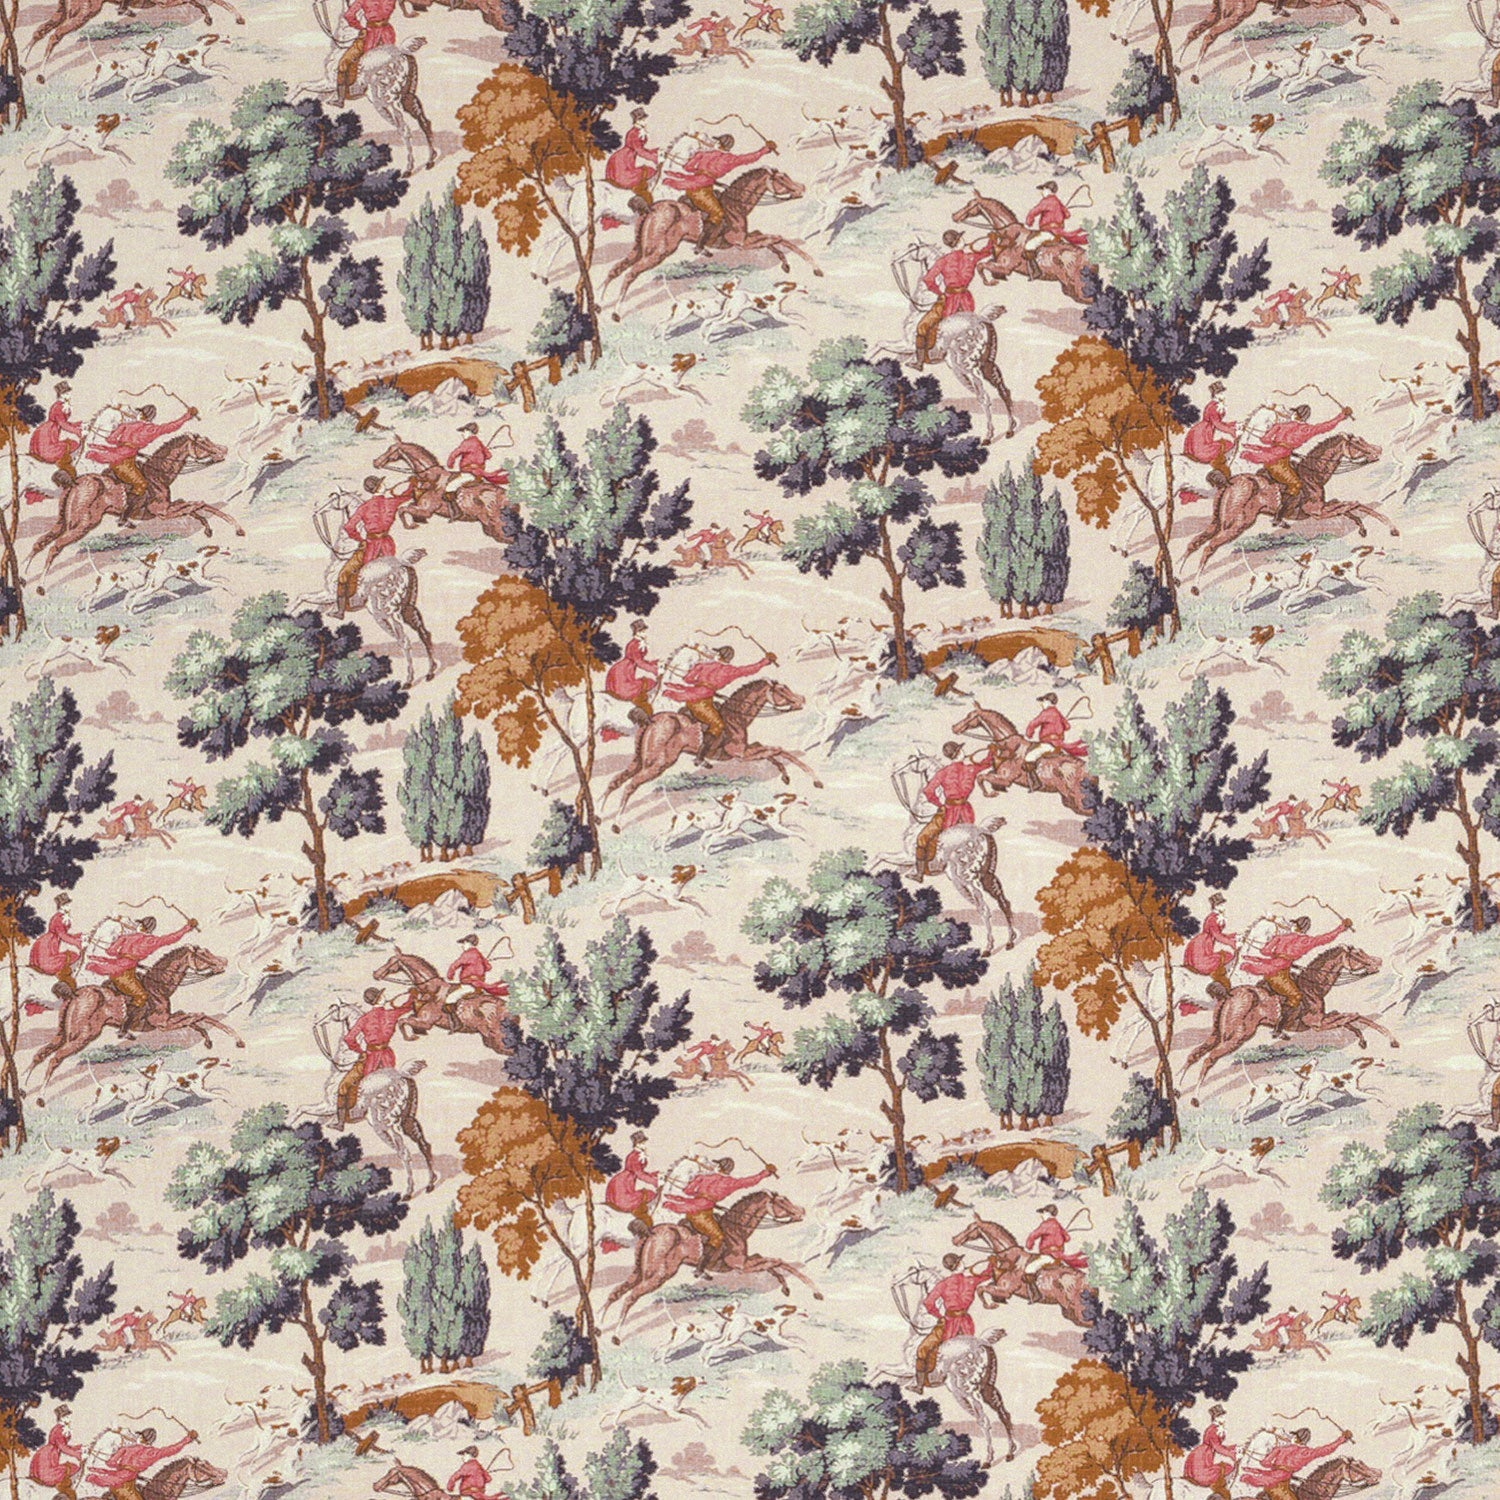 Hunting scene fabric suitable for curtains and upholstery